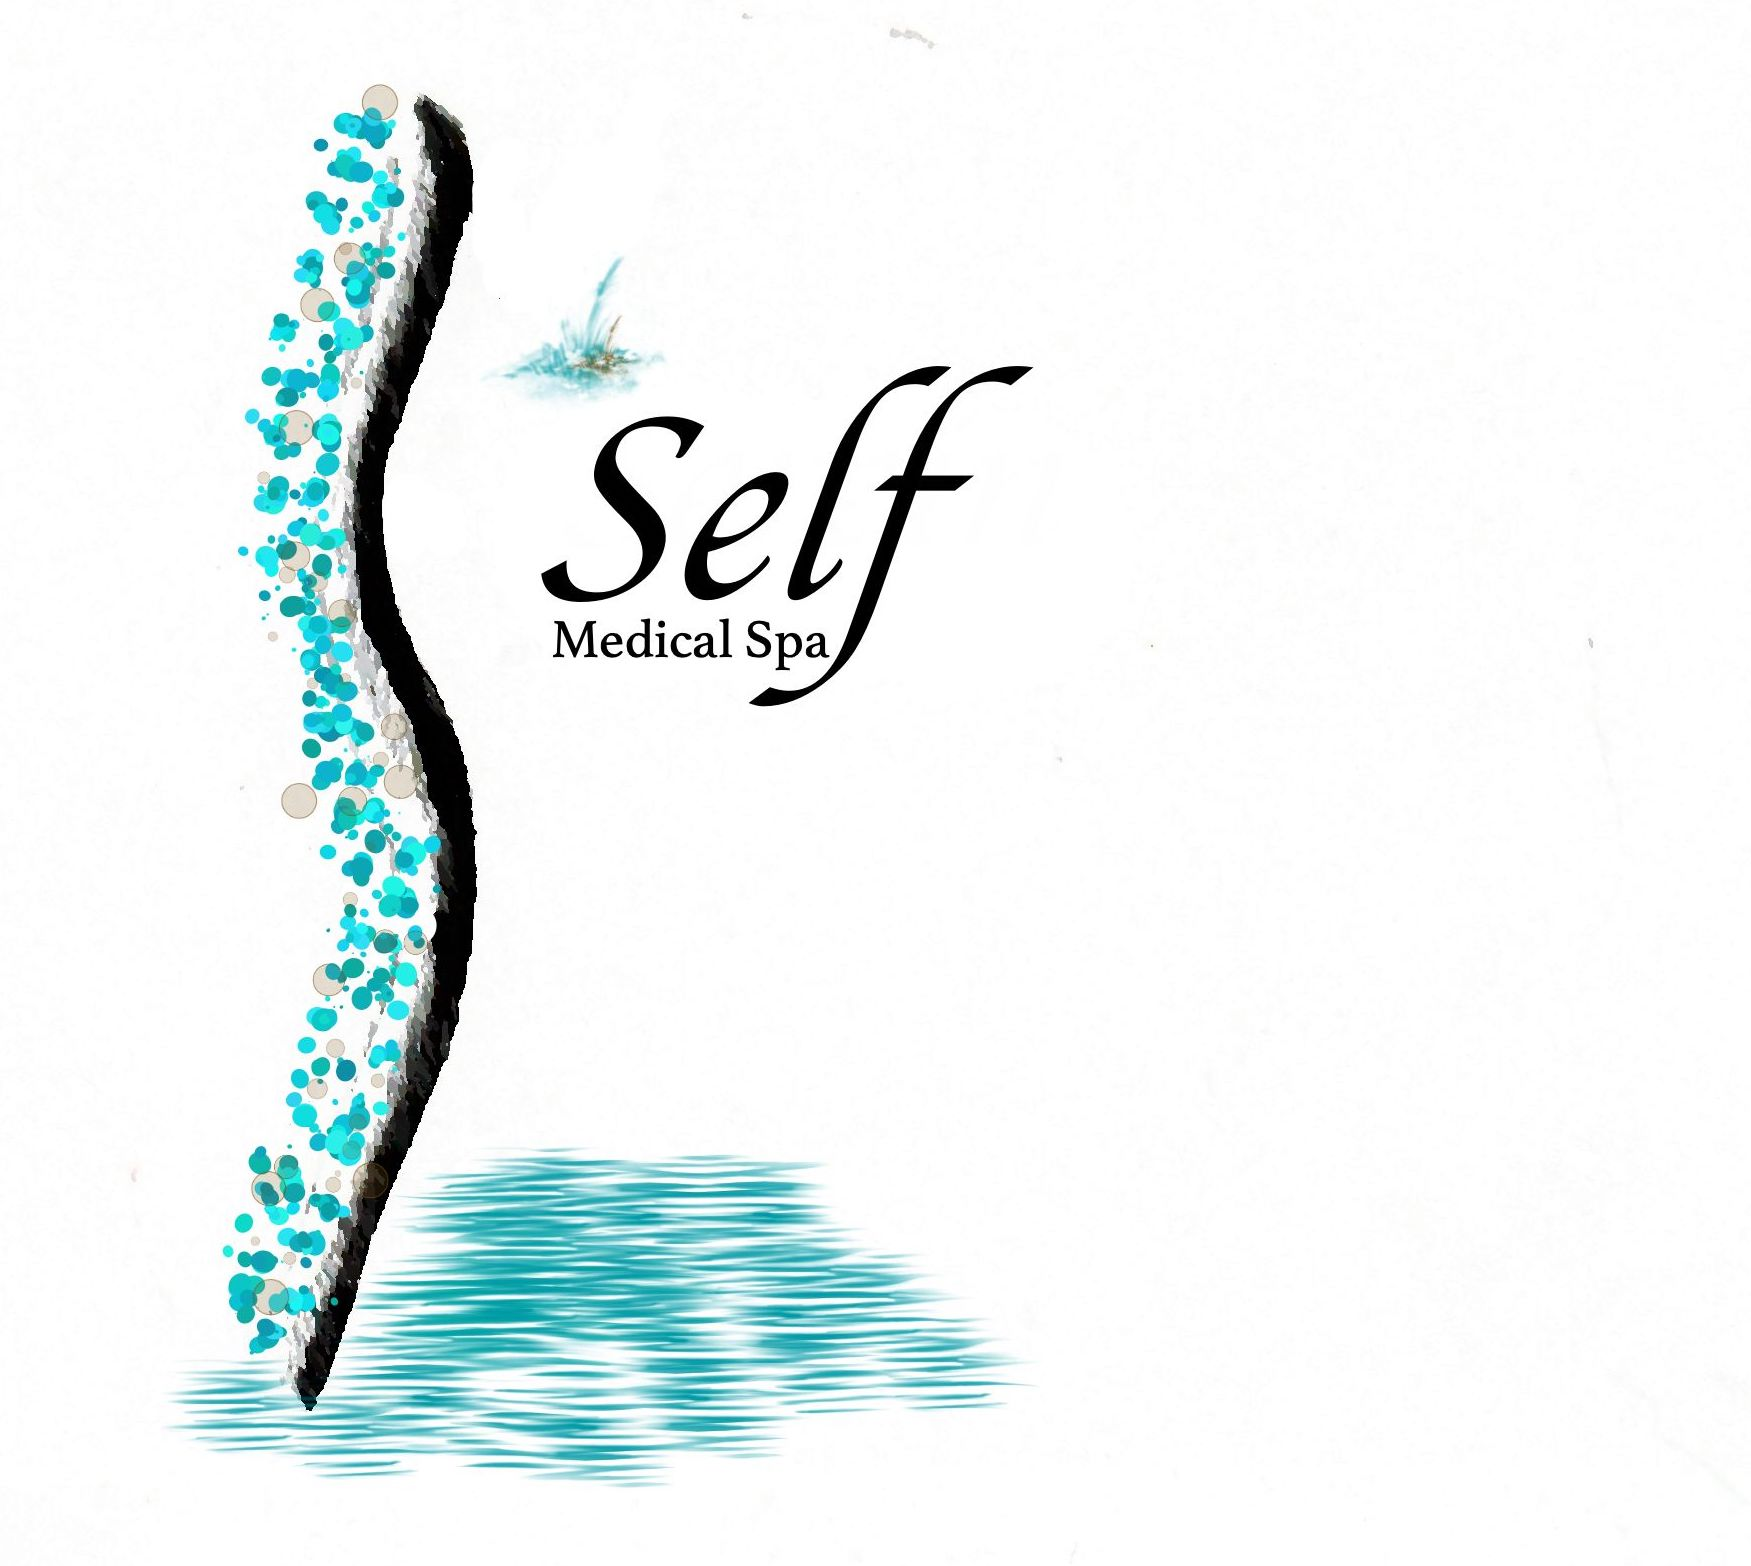 SELF MEDICAL SPA logo